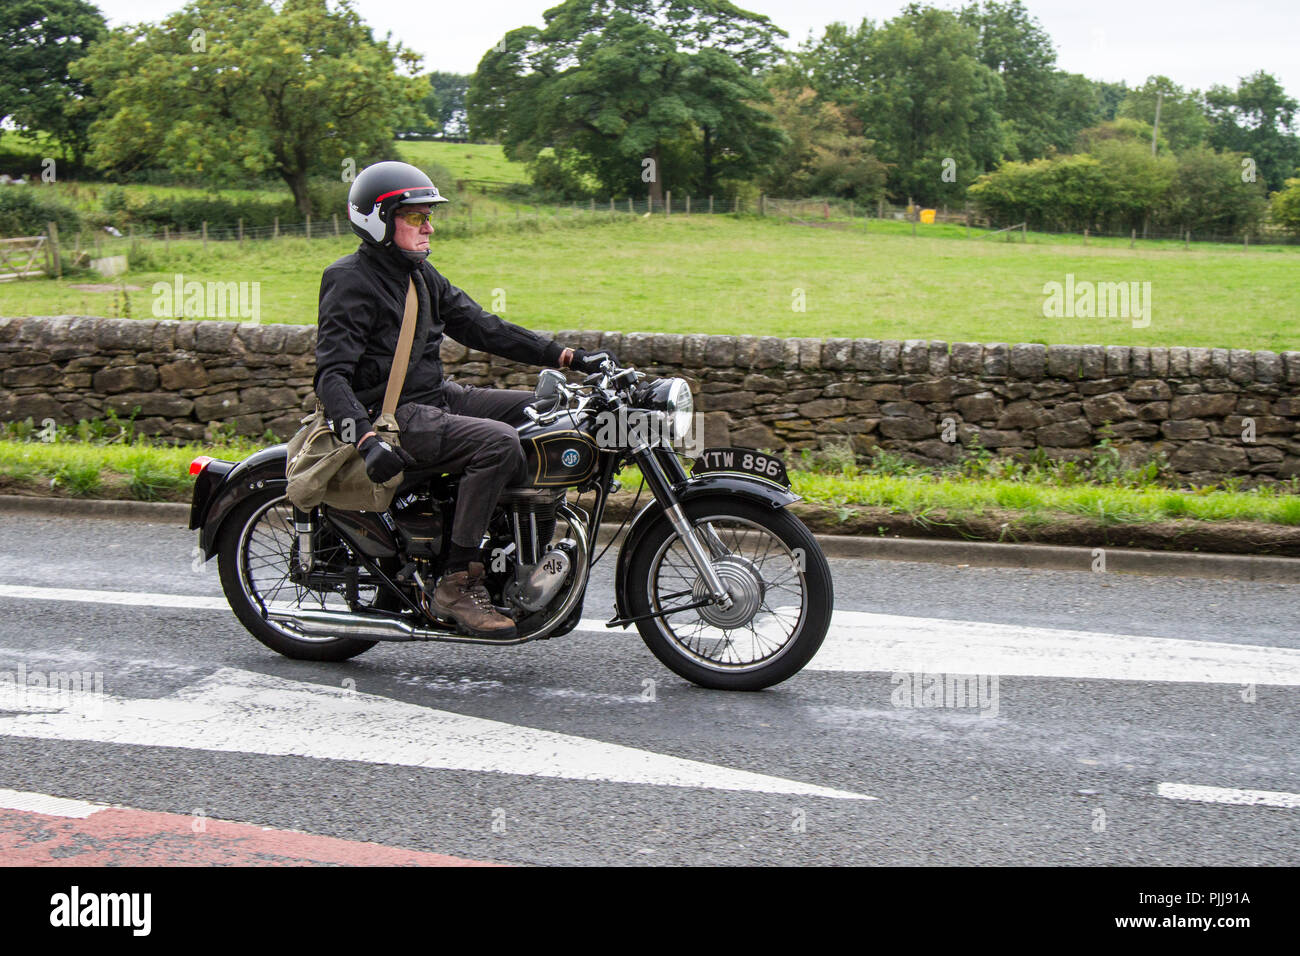 Black 1954 AJS Classic, vintage, veteran, motorcycle of yesteryear, restored collectibles at Hoghton Tower Class Cars Rally, UK - Stock Image